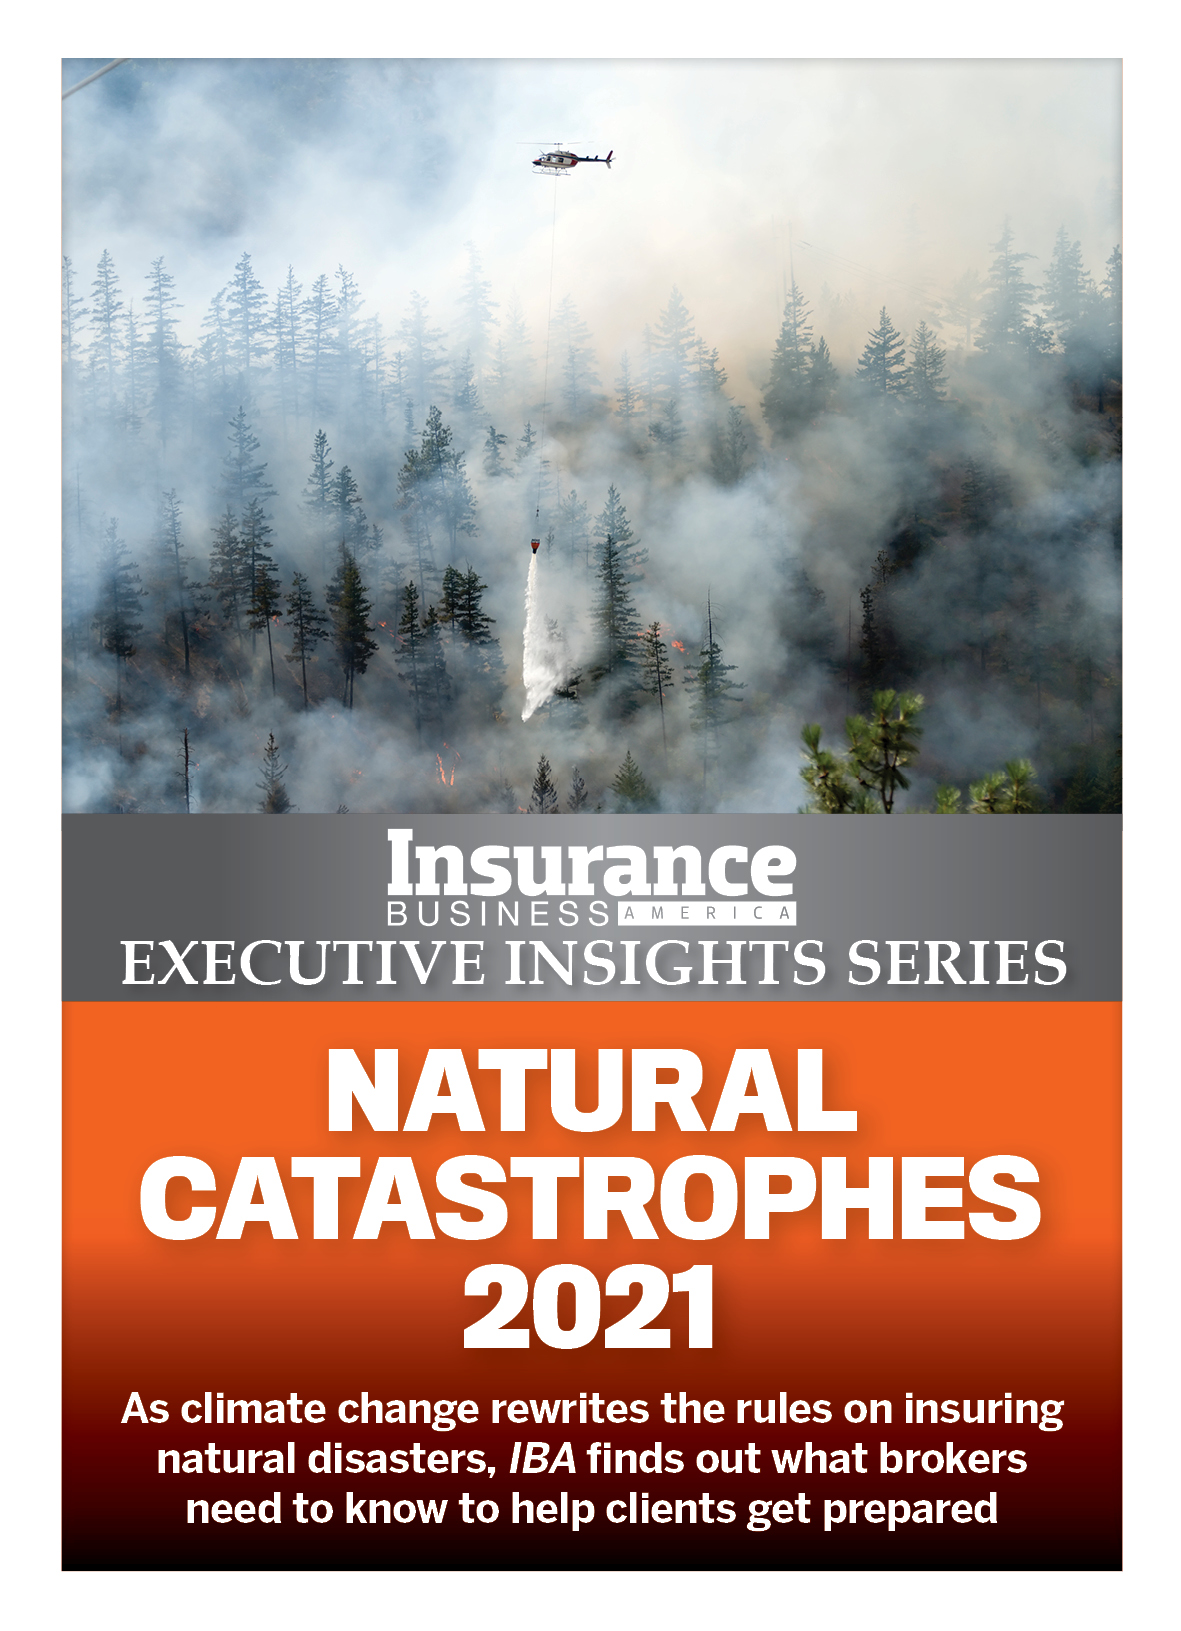 Insurance Business America 9.09 - Executive Insights Series: Natural Catastrophes 2021